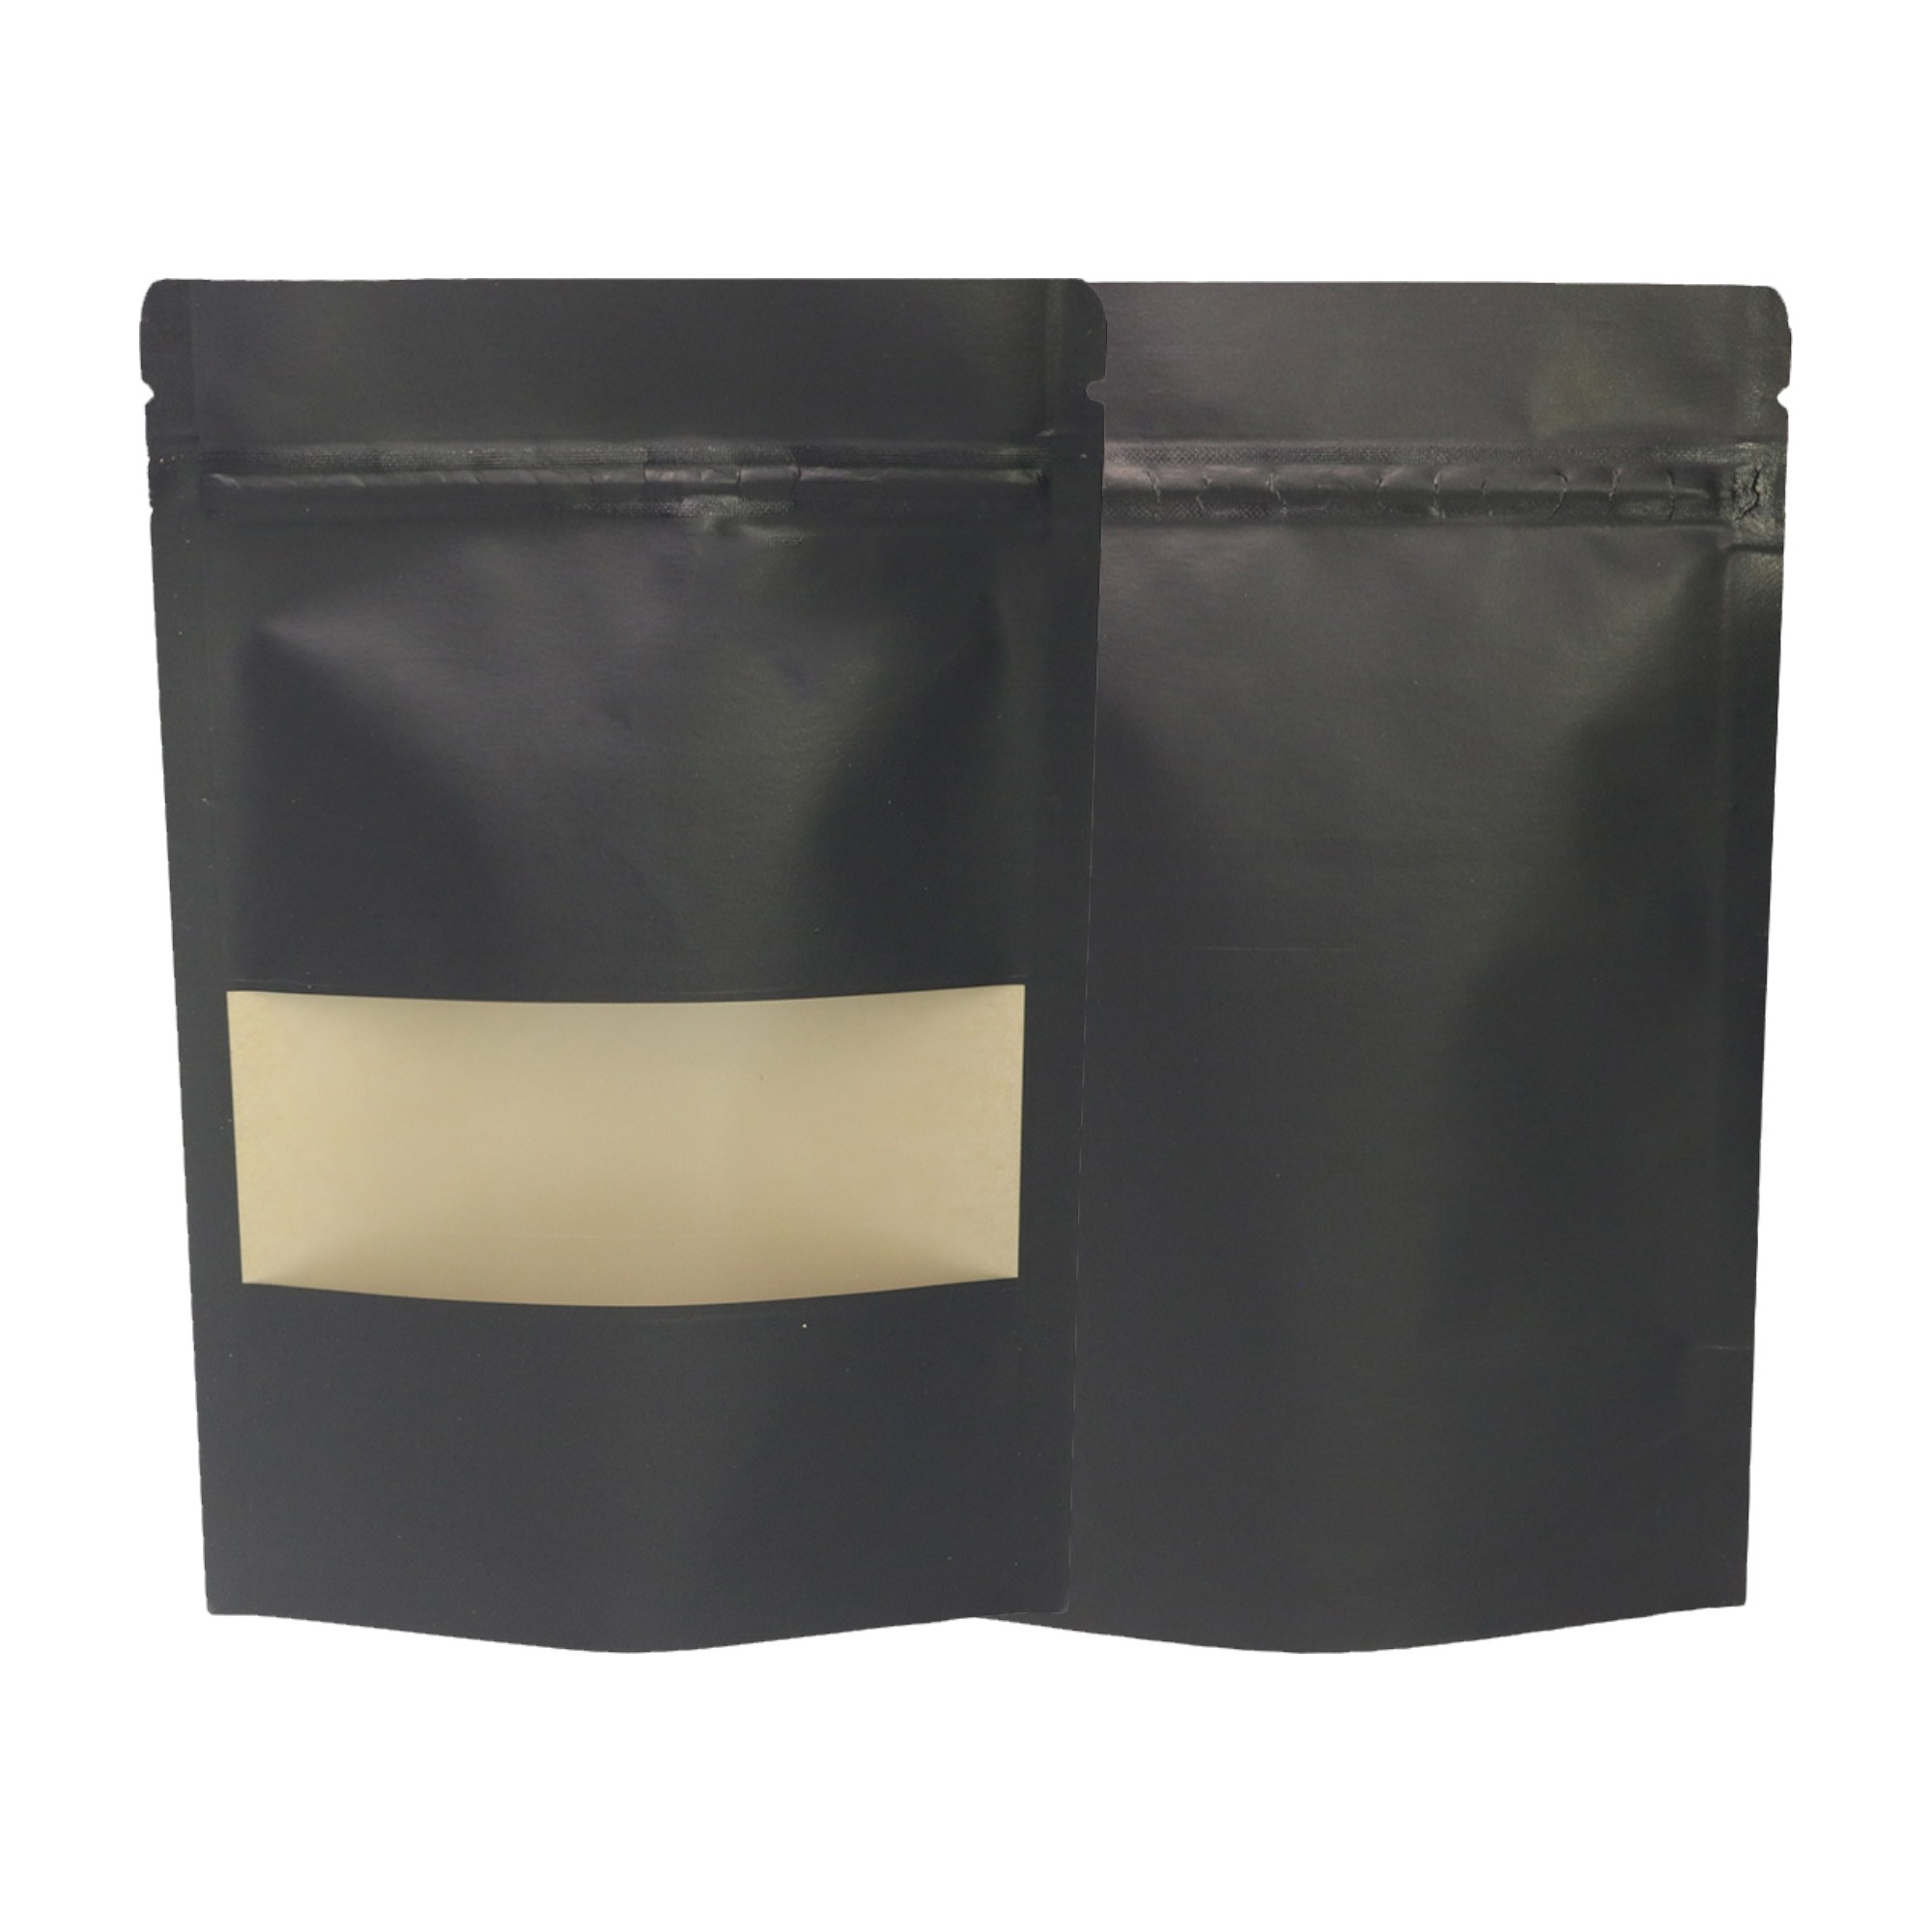 Black Kraft Standup Ziplock Bags w/ Clear Front Window 14 cm x 20 cm [5.5 inches x 7.9 inches] (500 Bags/Lot)